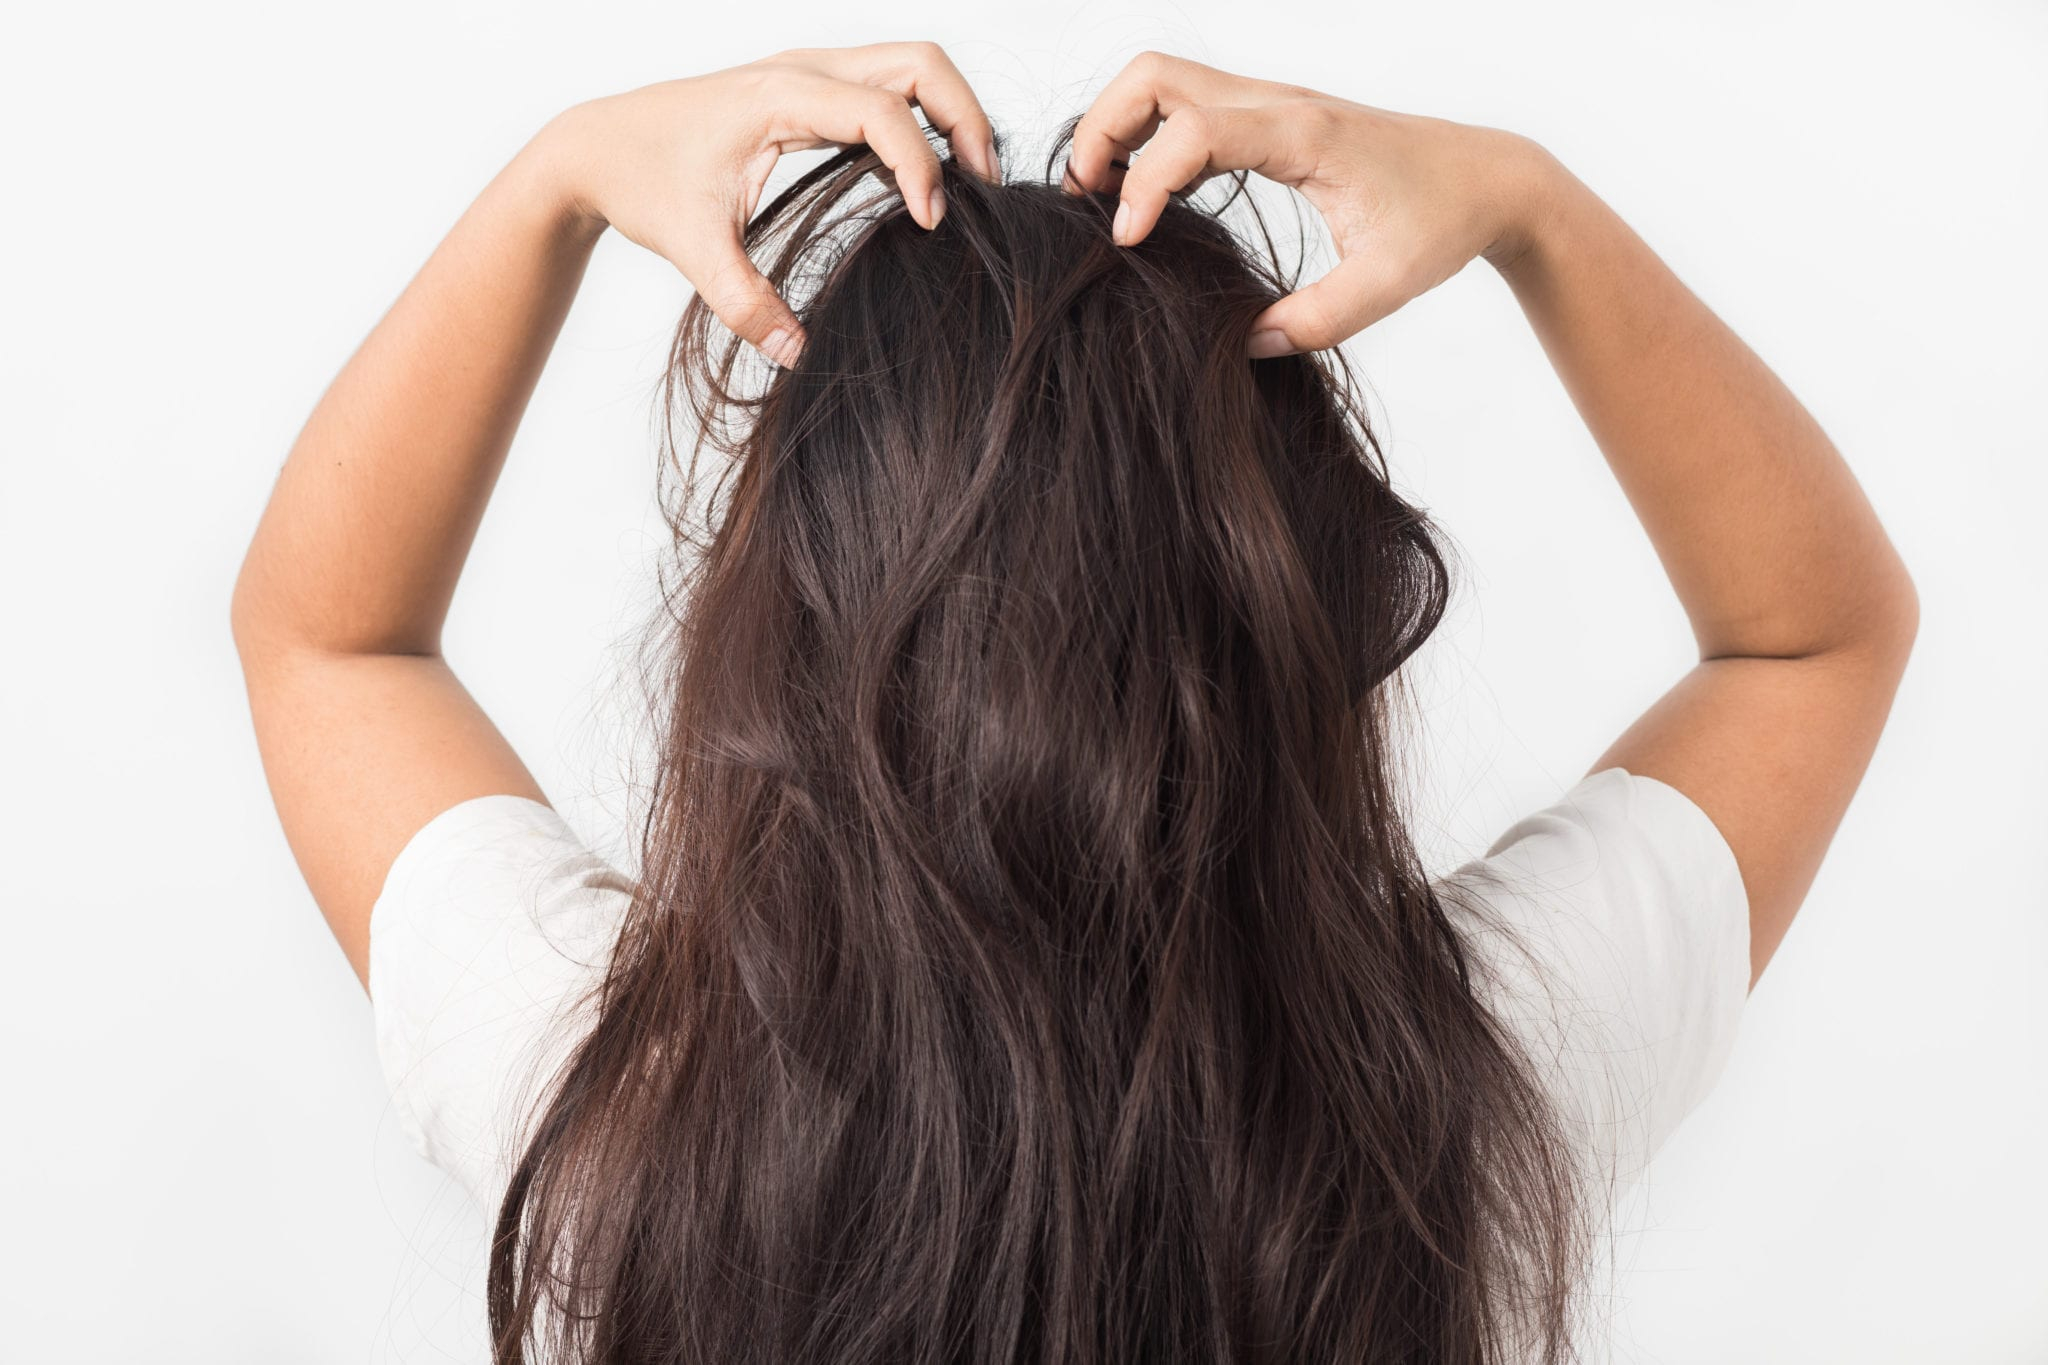 Lice are not dangerous but they can definitely cause discomfort